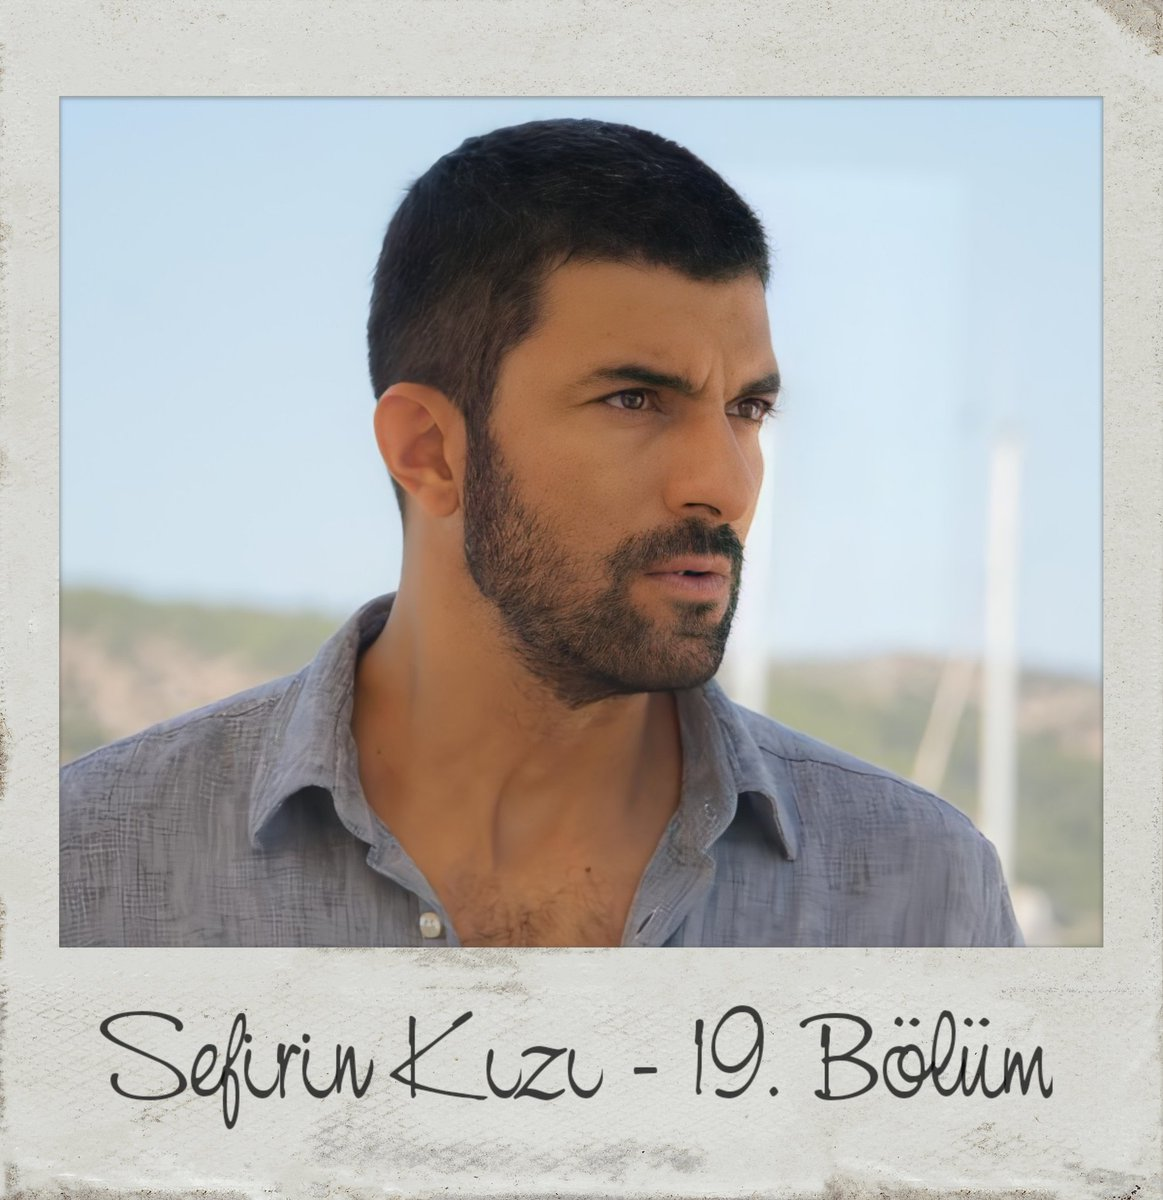 Sancar Efe ~ Sefirin Kızı ~ 19. Bölüm  #enginakyürek #sefirinkızı #sancarefe https://t.co/nQAH8N7sIv